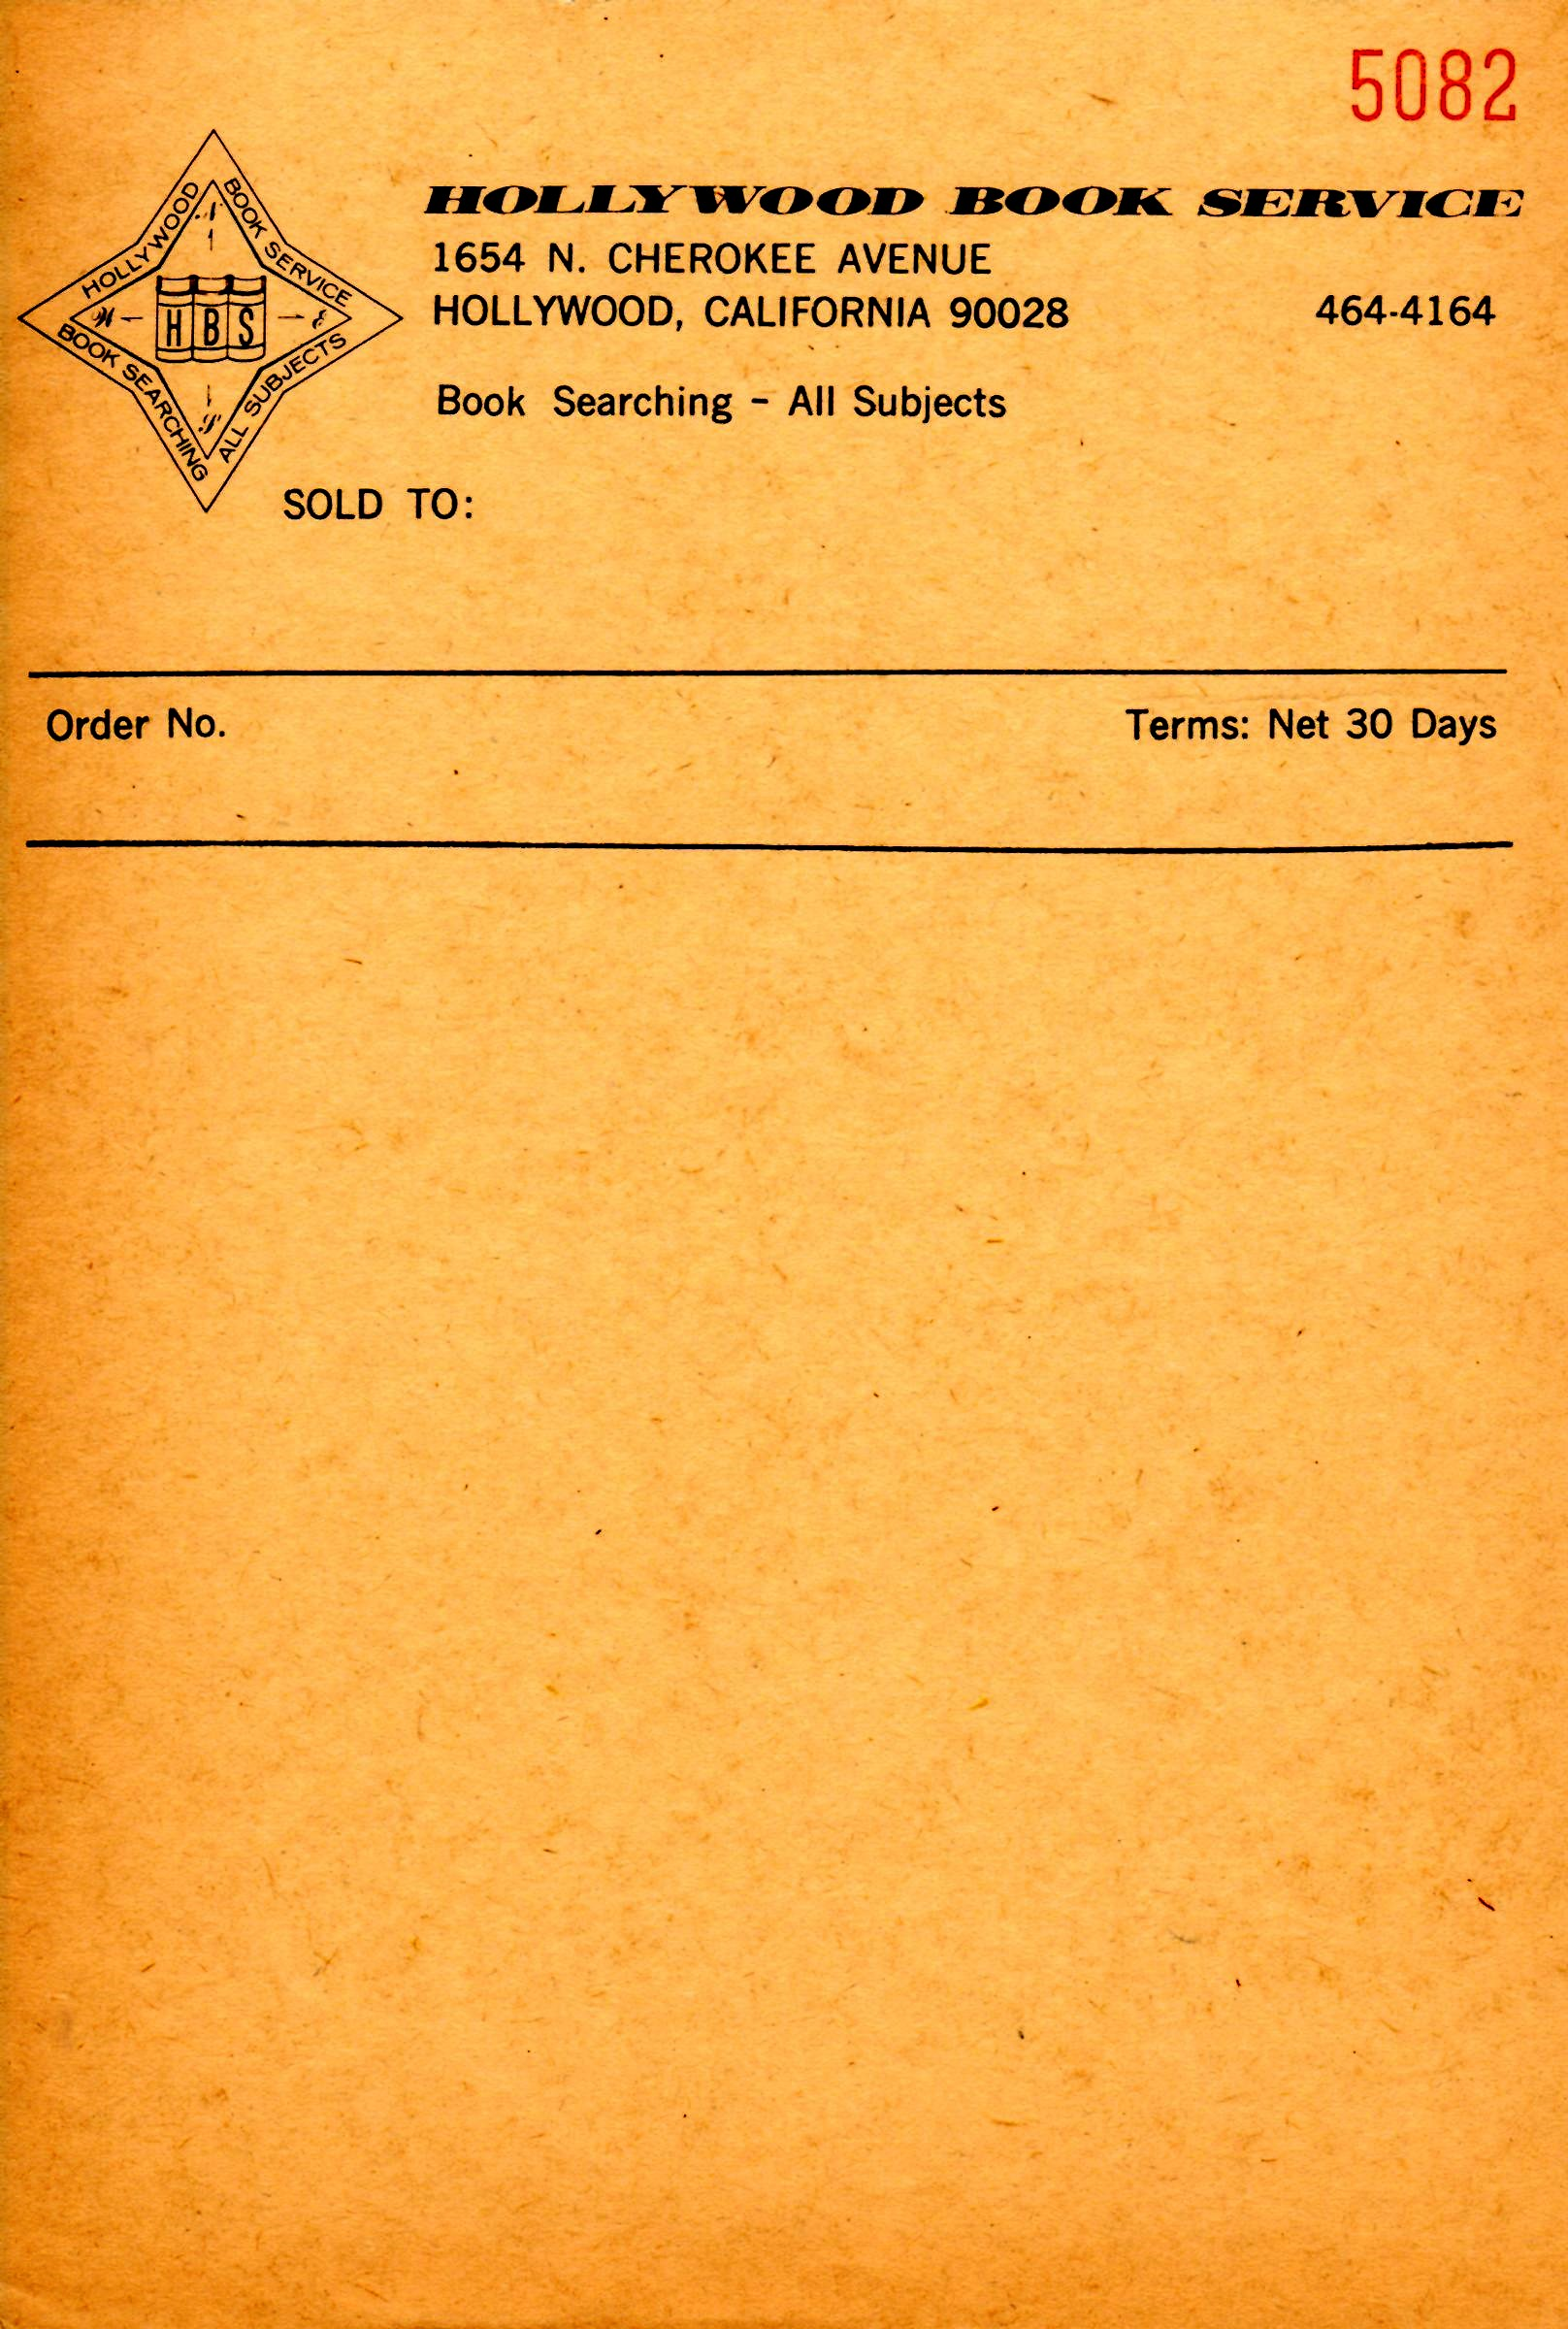 Hollywood Book Service invoice. Collection of Paul Hunt